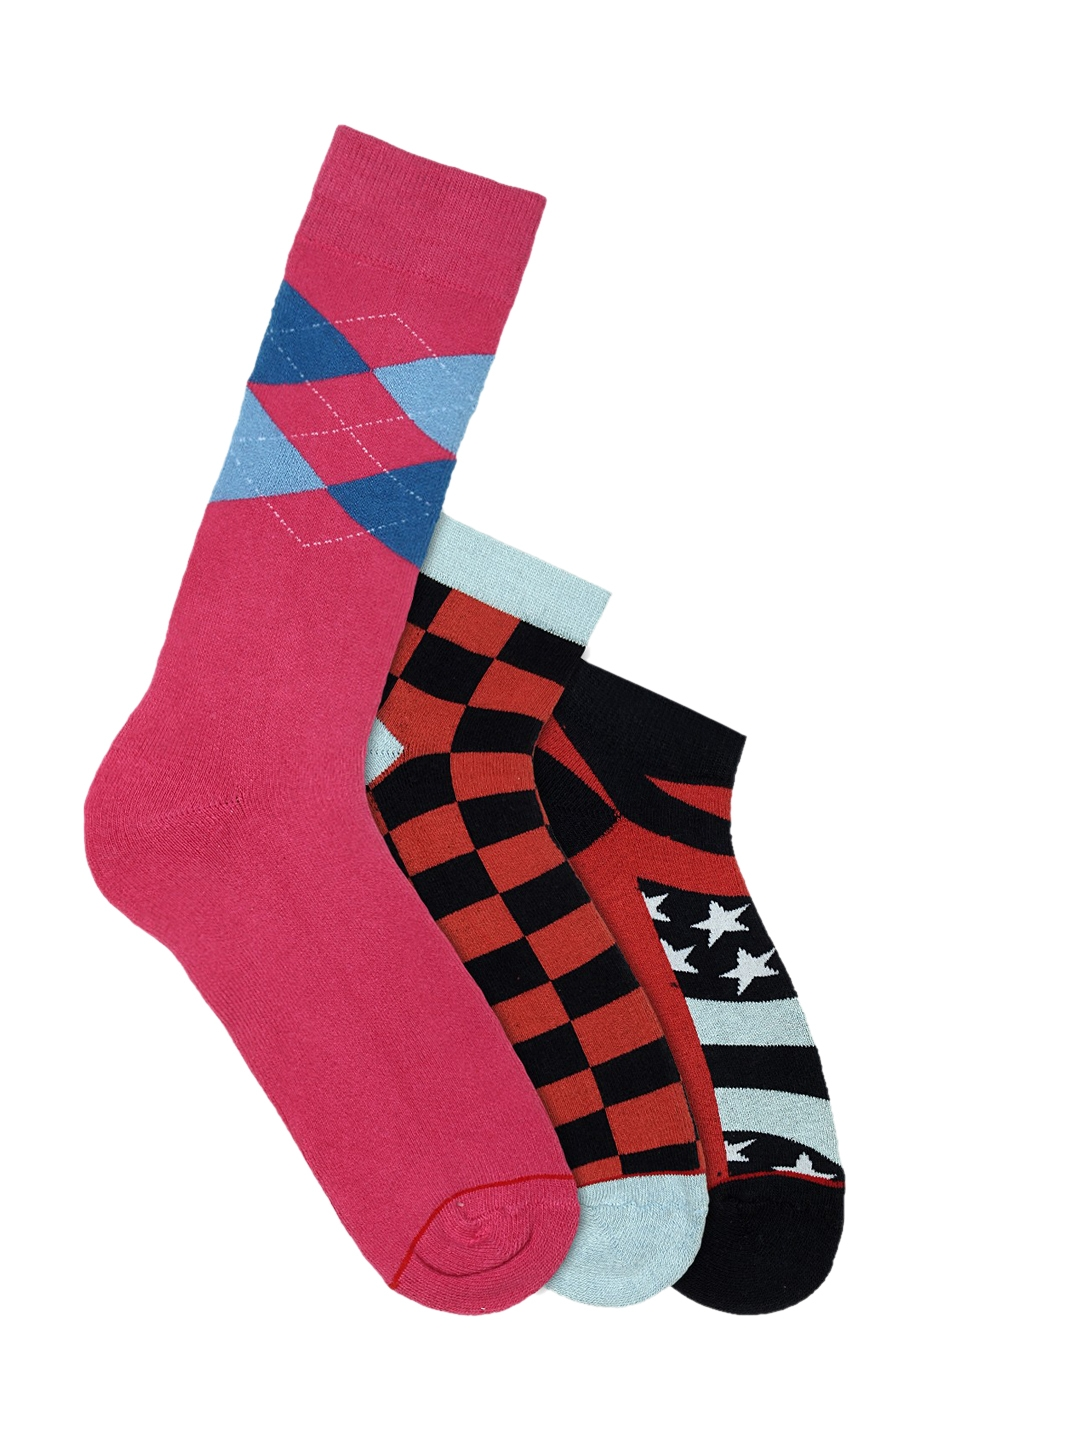 <p>Soxytoes Sockaholic Men Pack of 3 Multi Coloured Patterned Casual Socks</p>